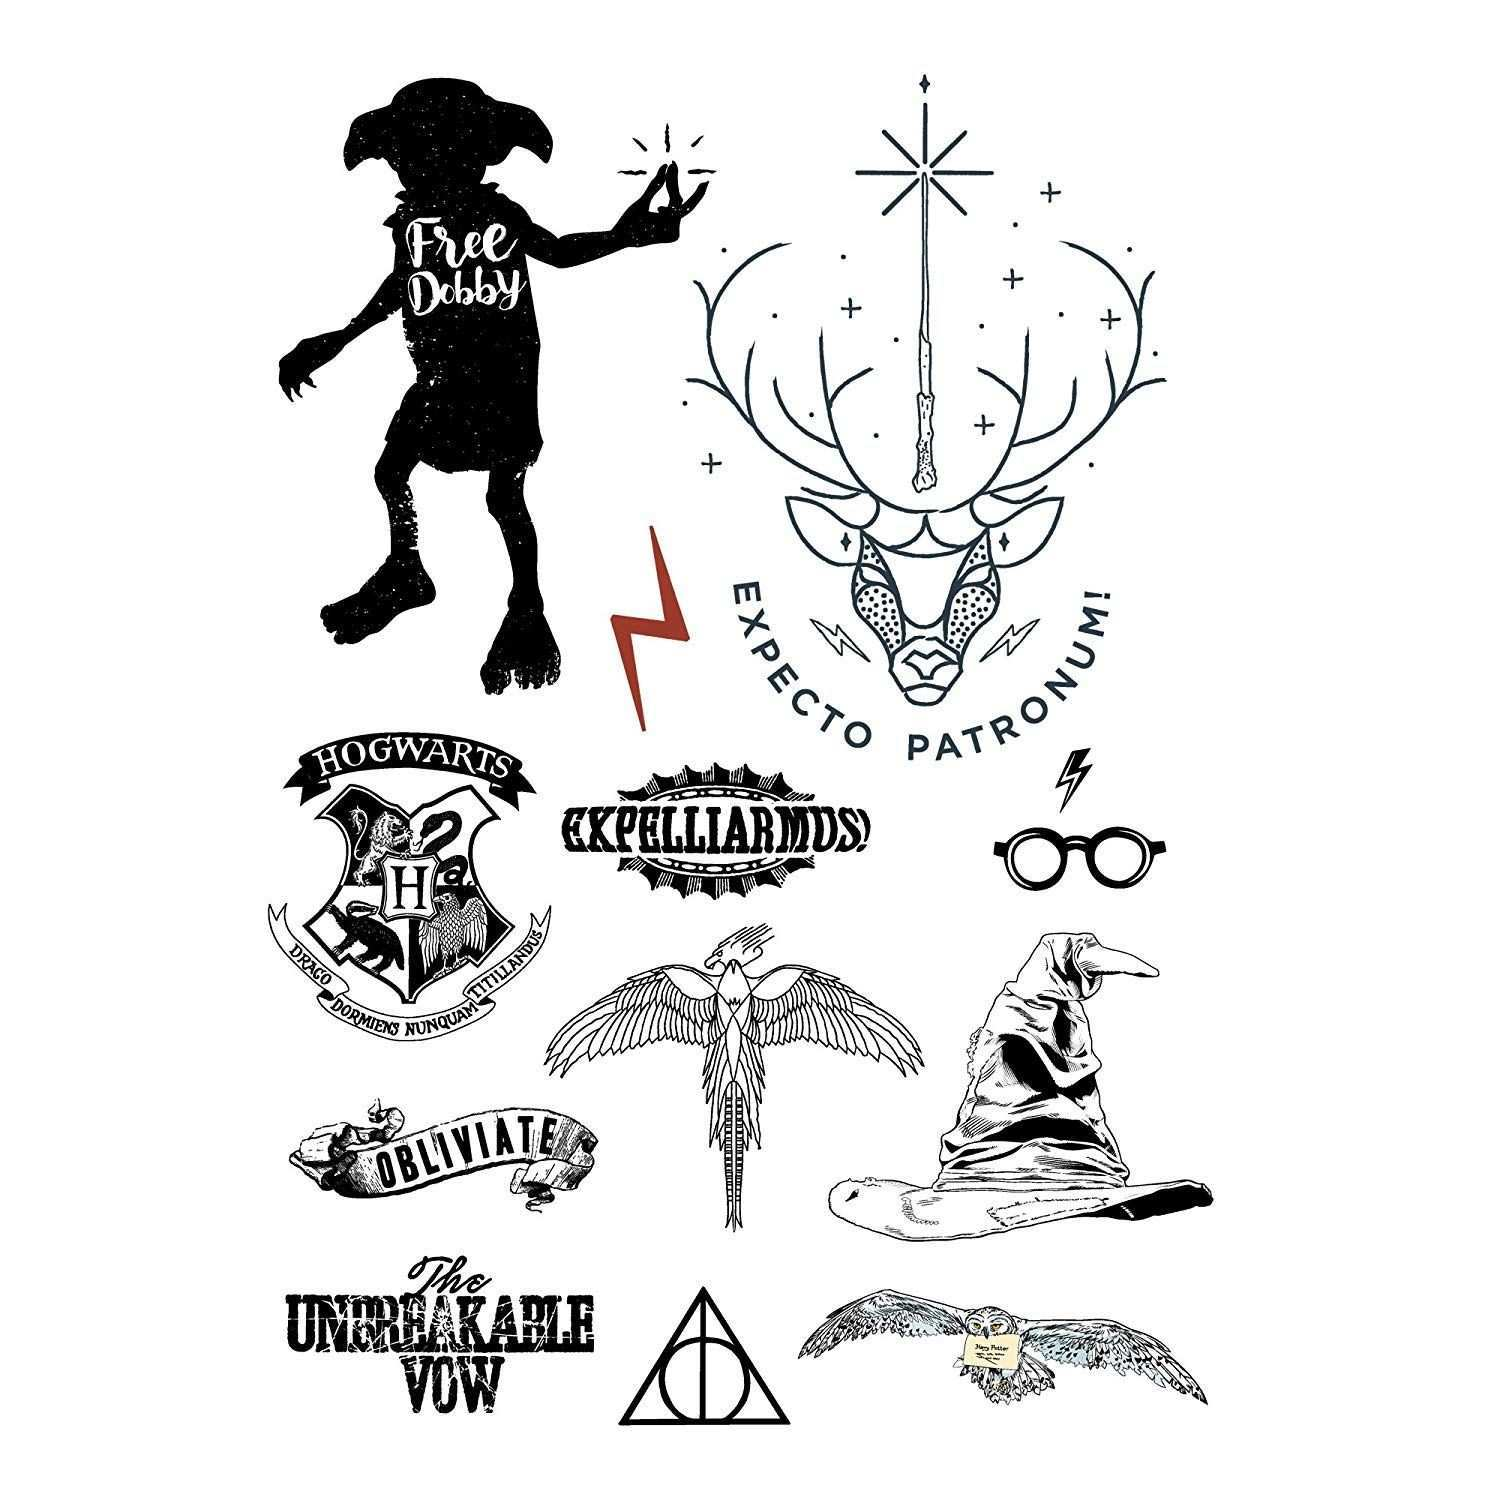 Harry Potter Tattoos Temporary Idea Styles Offizielle Tattoo Cinereplicas Ad Harry Potter Zeichnungen Harry Potter Bilder Harry Potter Tattoos